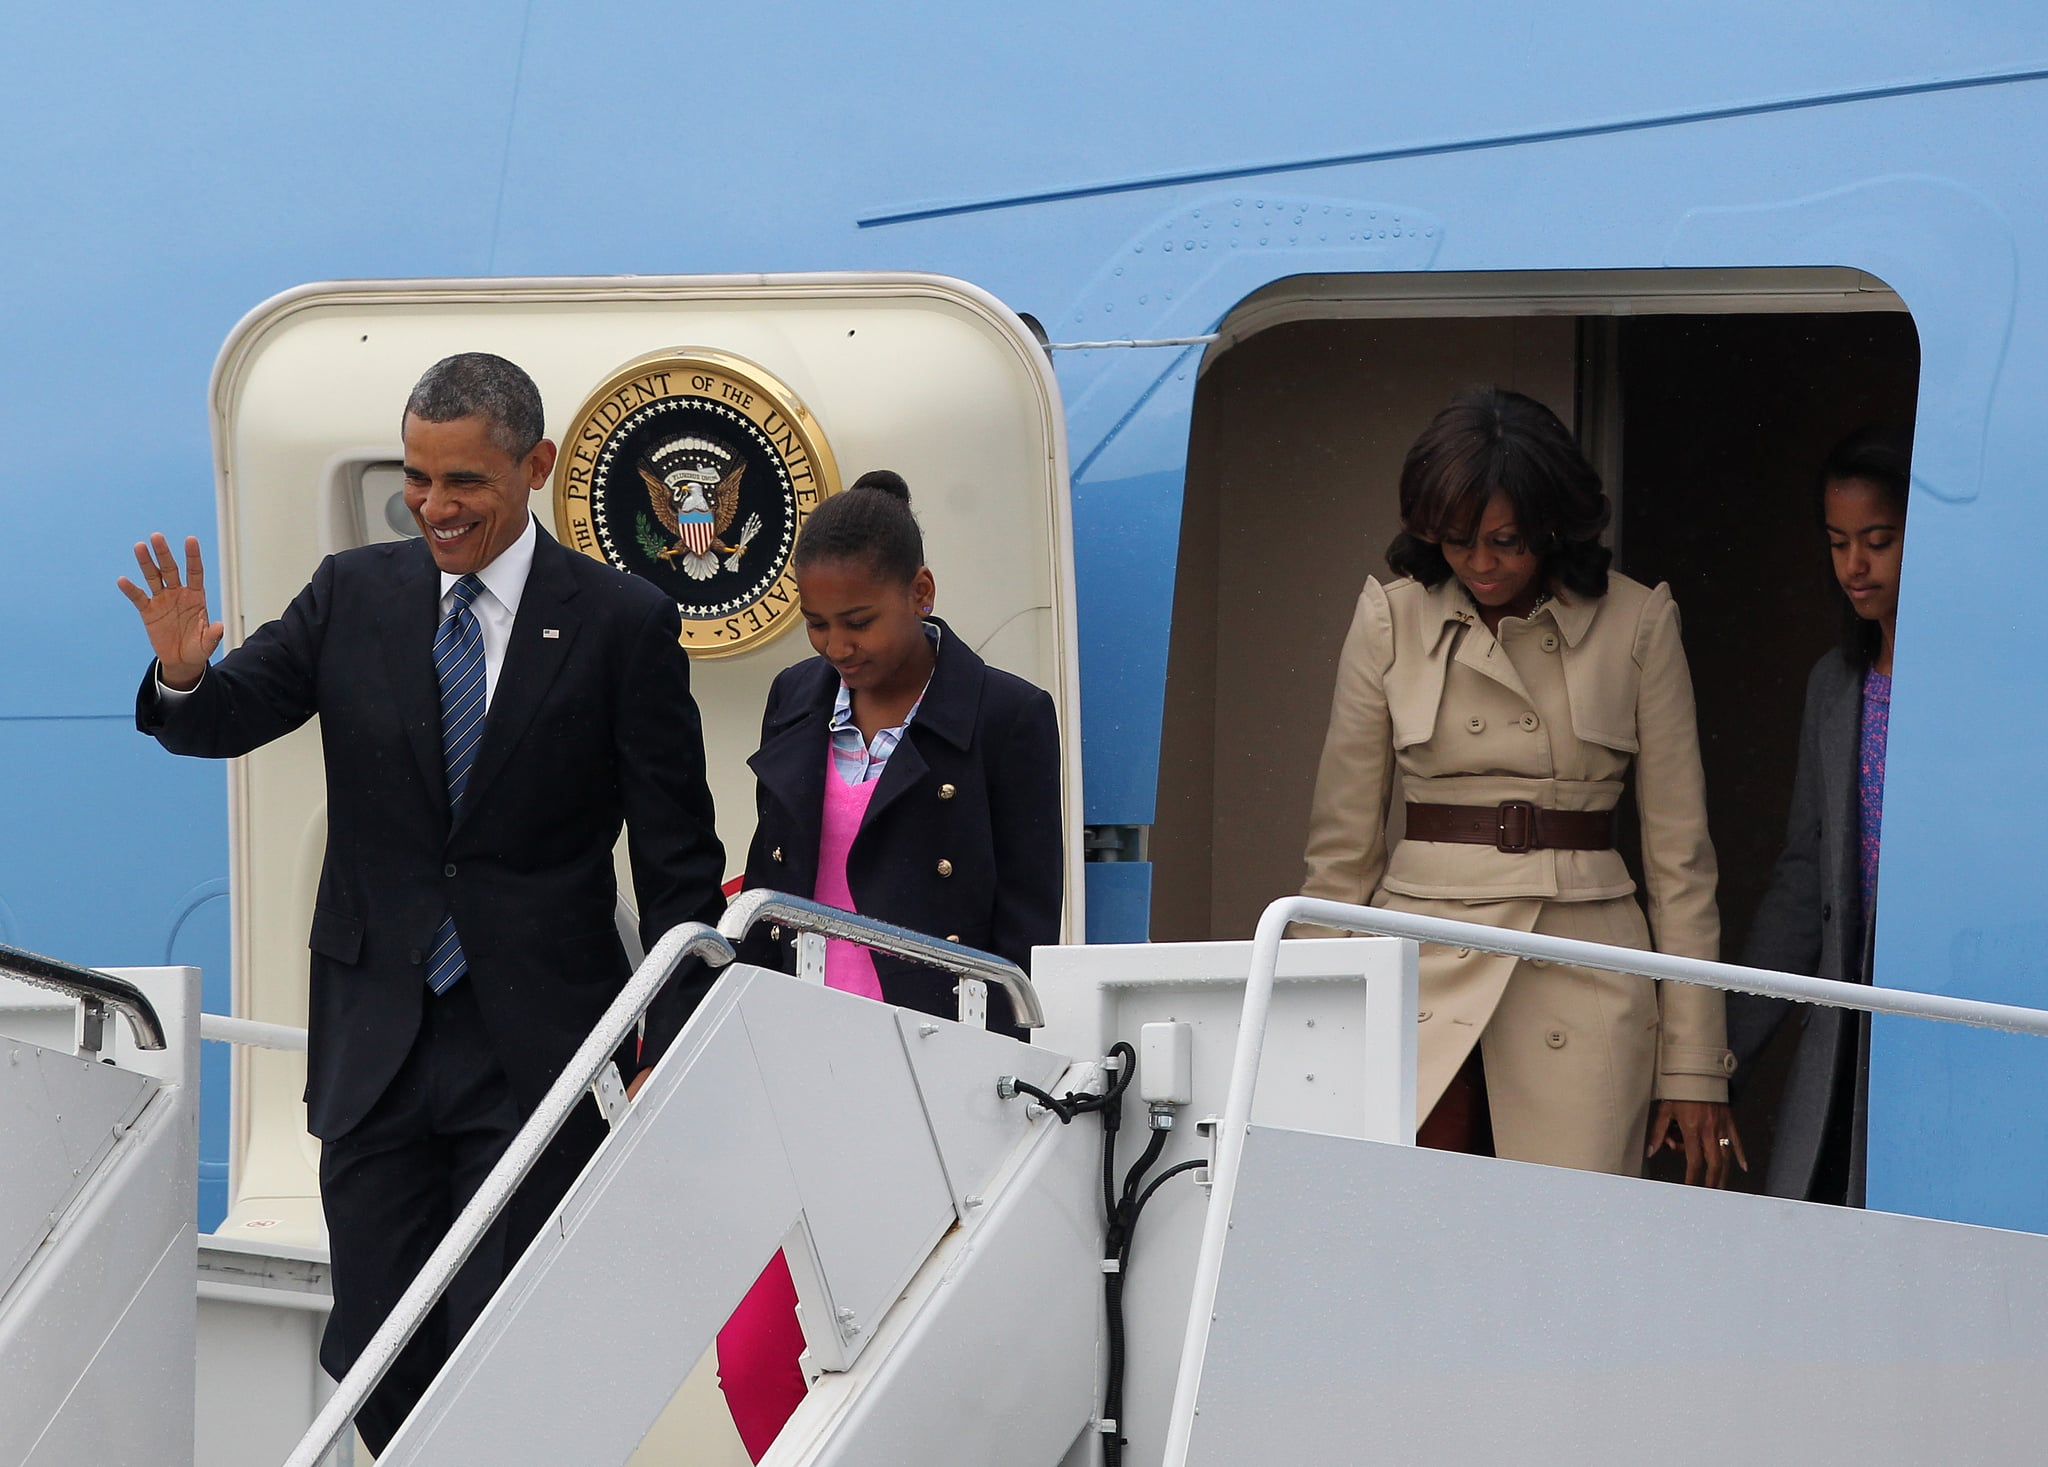 The first family landed in Belfast, and upon exiting Air Force One, Michelle Obama showed off a beautiful, buttery Burberry trench coat.